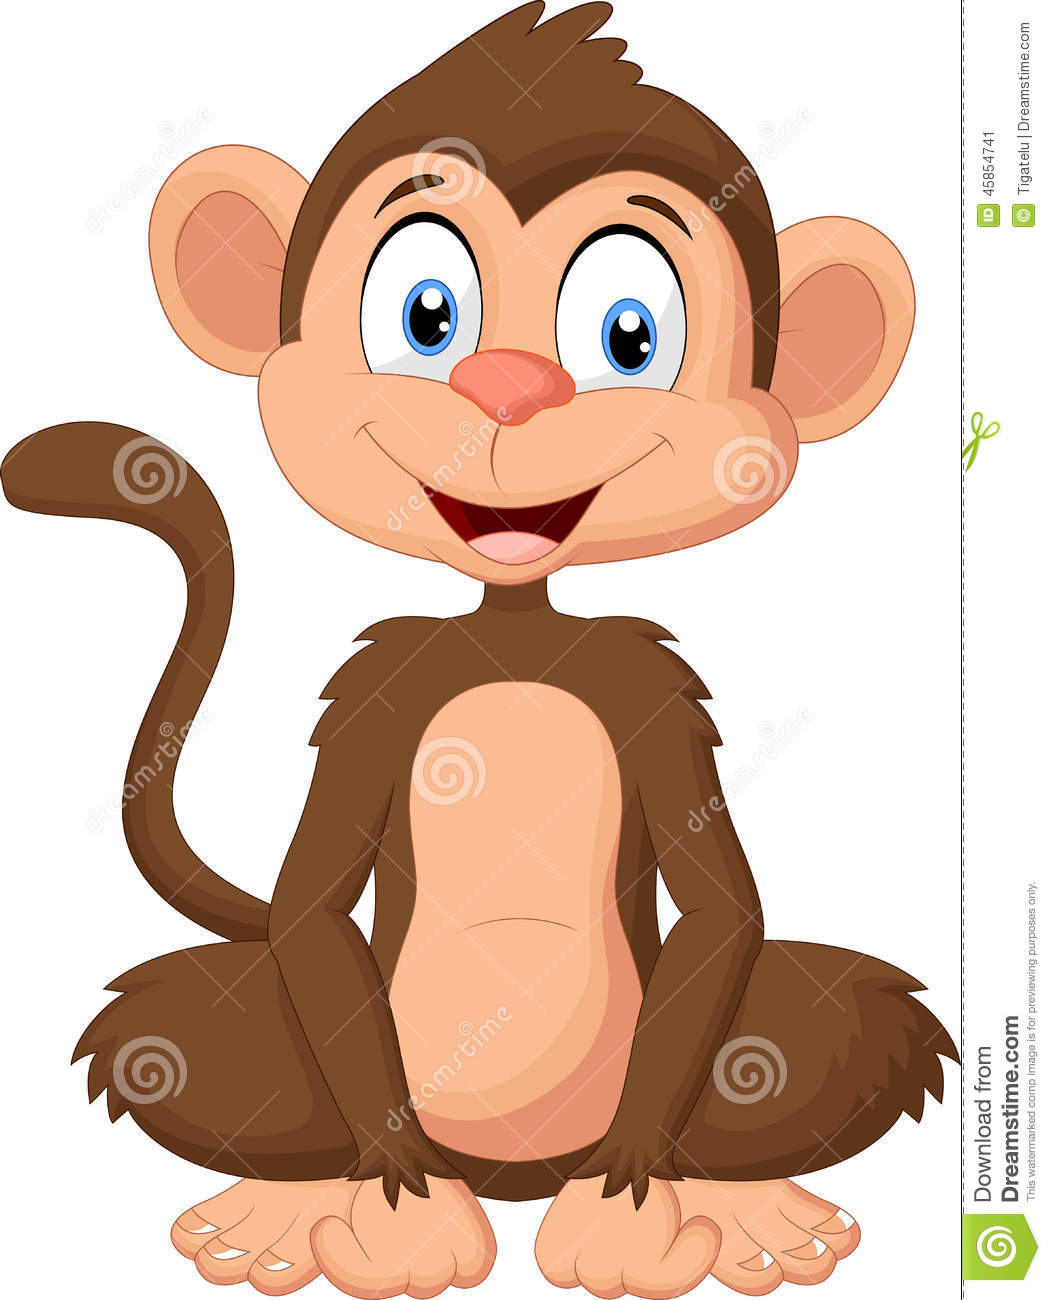 cartoon monkey sitting stock vector illustration of wild 45854741